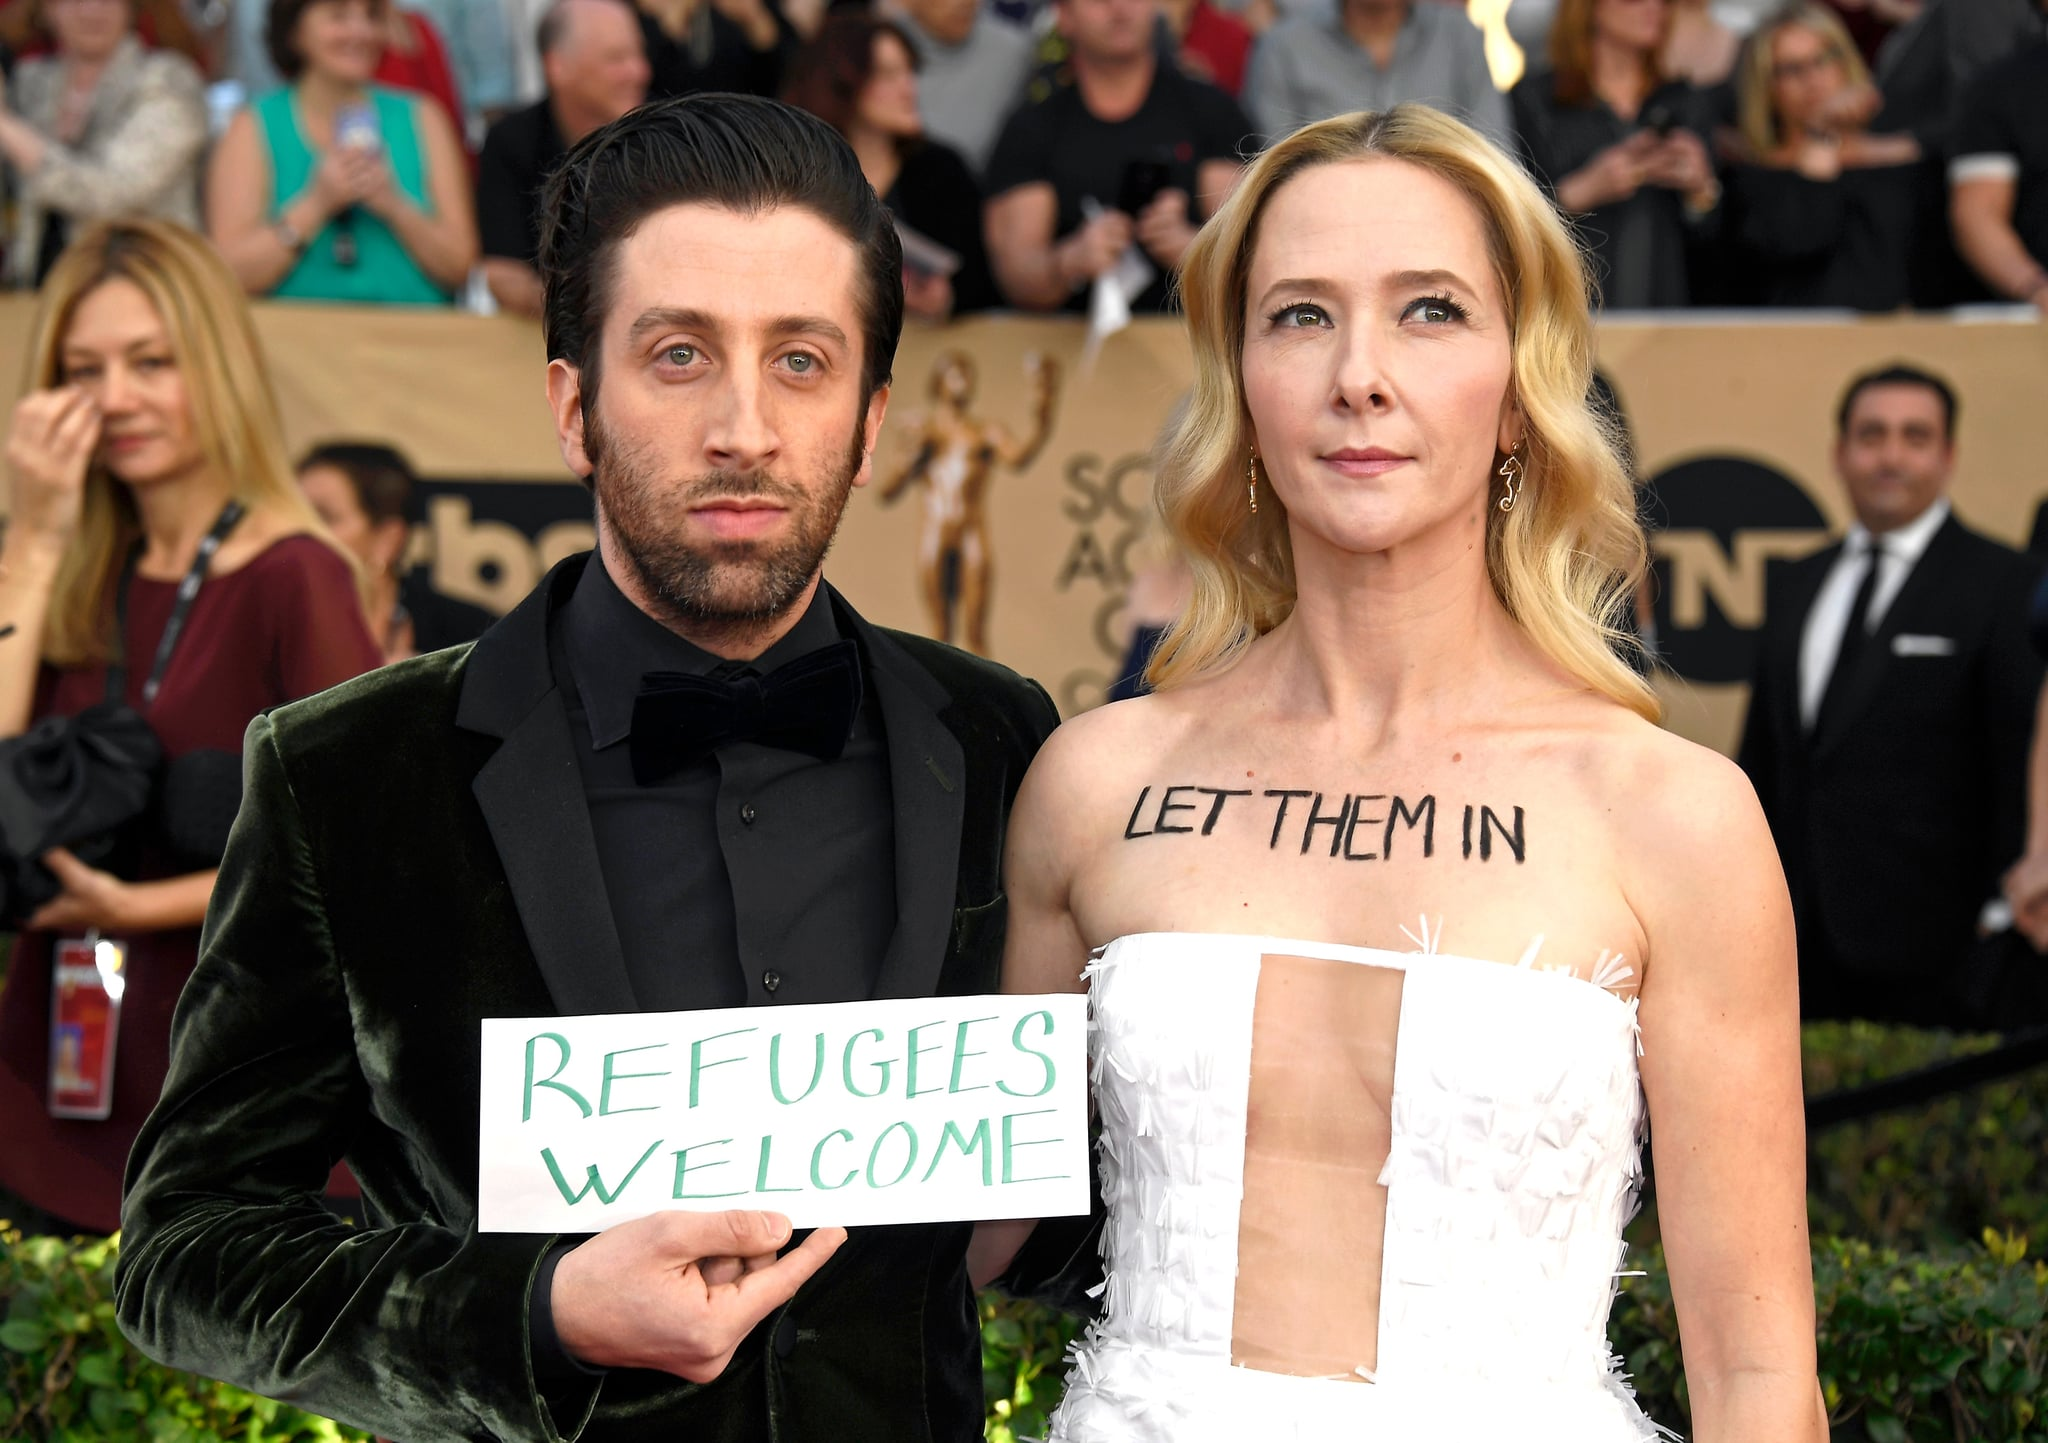 Image result for sag award protest picture